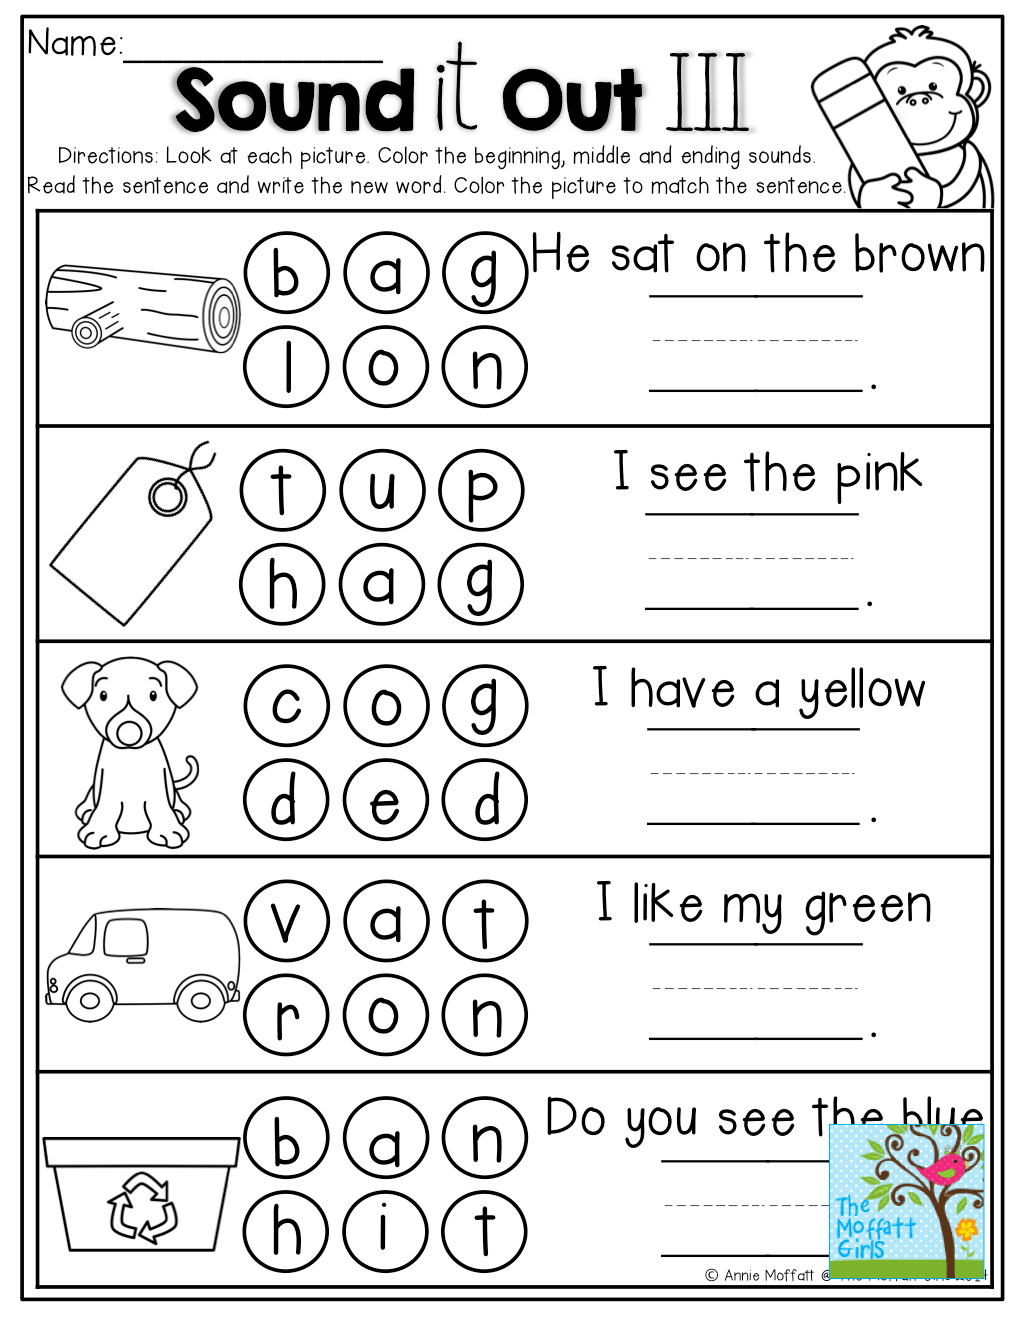 Worksheet Sounding Out Words Worksheets Grass Fedjp